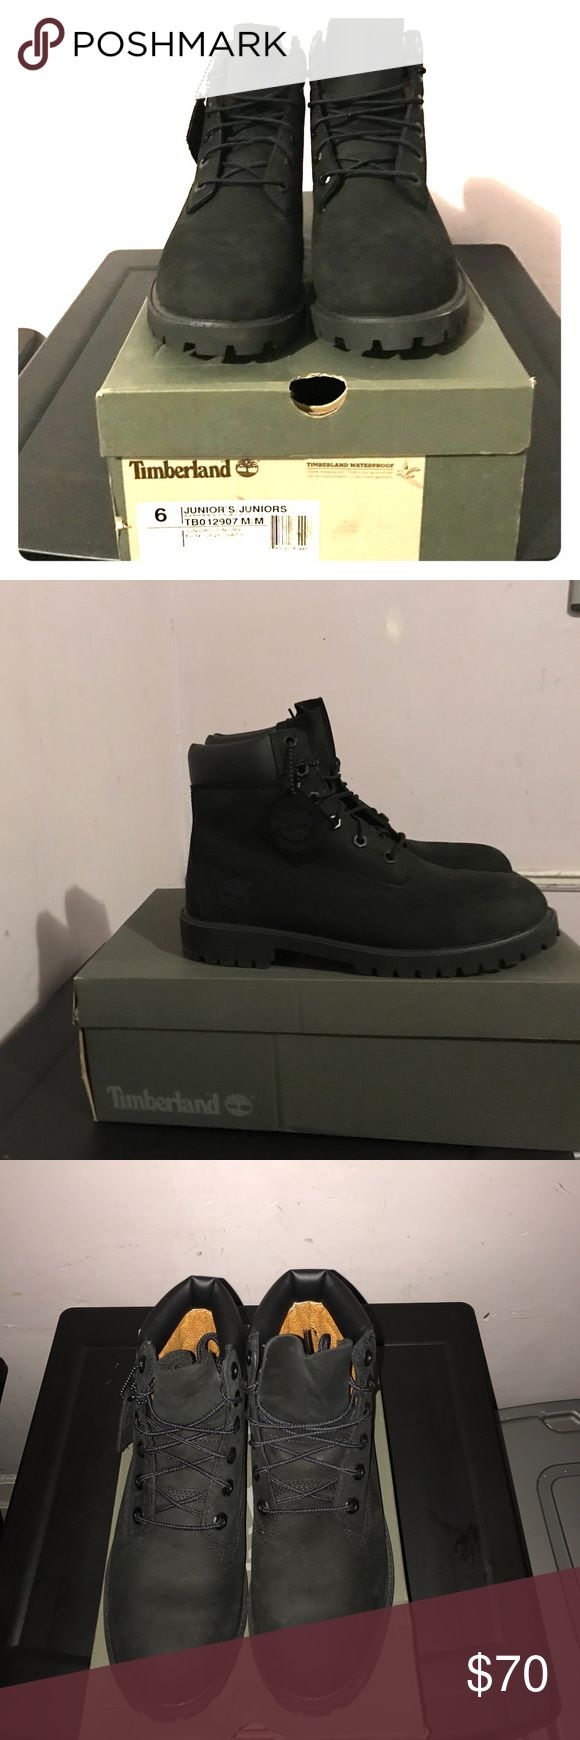 Timberland Junior's size 6 Brand new never worn all black Timberland's Timberland Shoes Boots